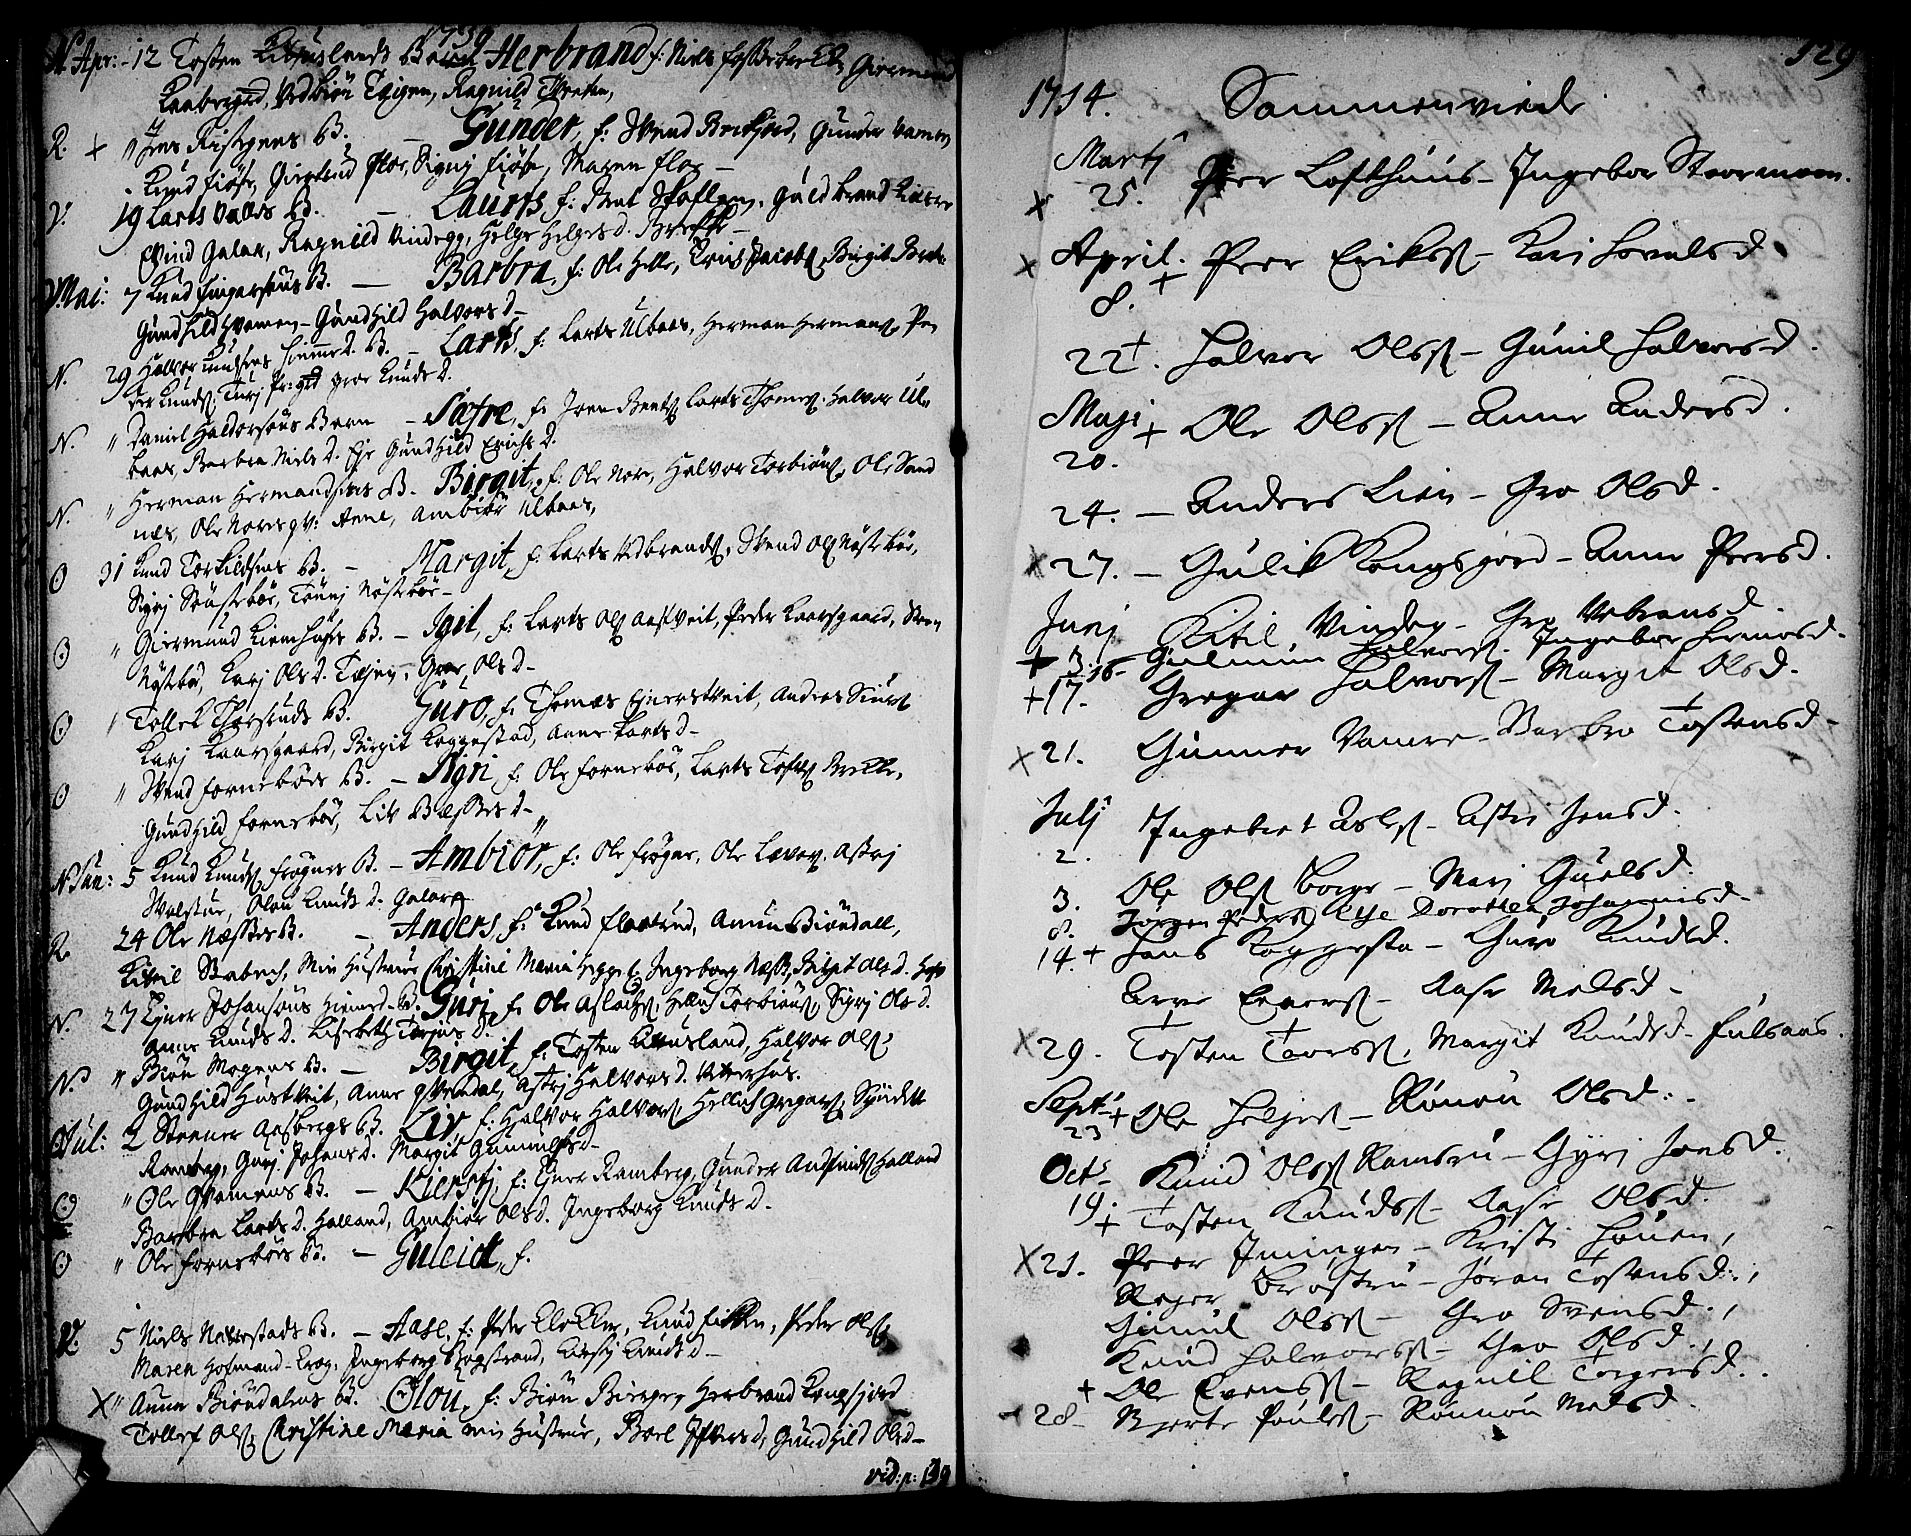 SAKO, Rollag kirkebøker, F/Fa/L0002: Parish register (official) no. I 2, 1714-1742, p. 129